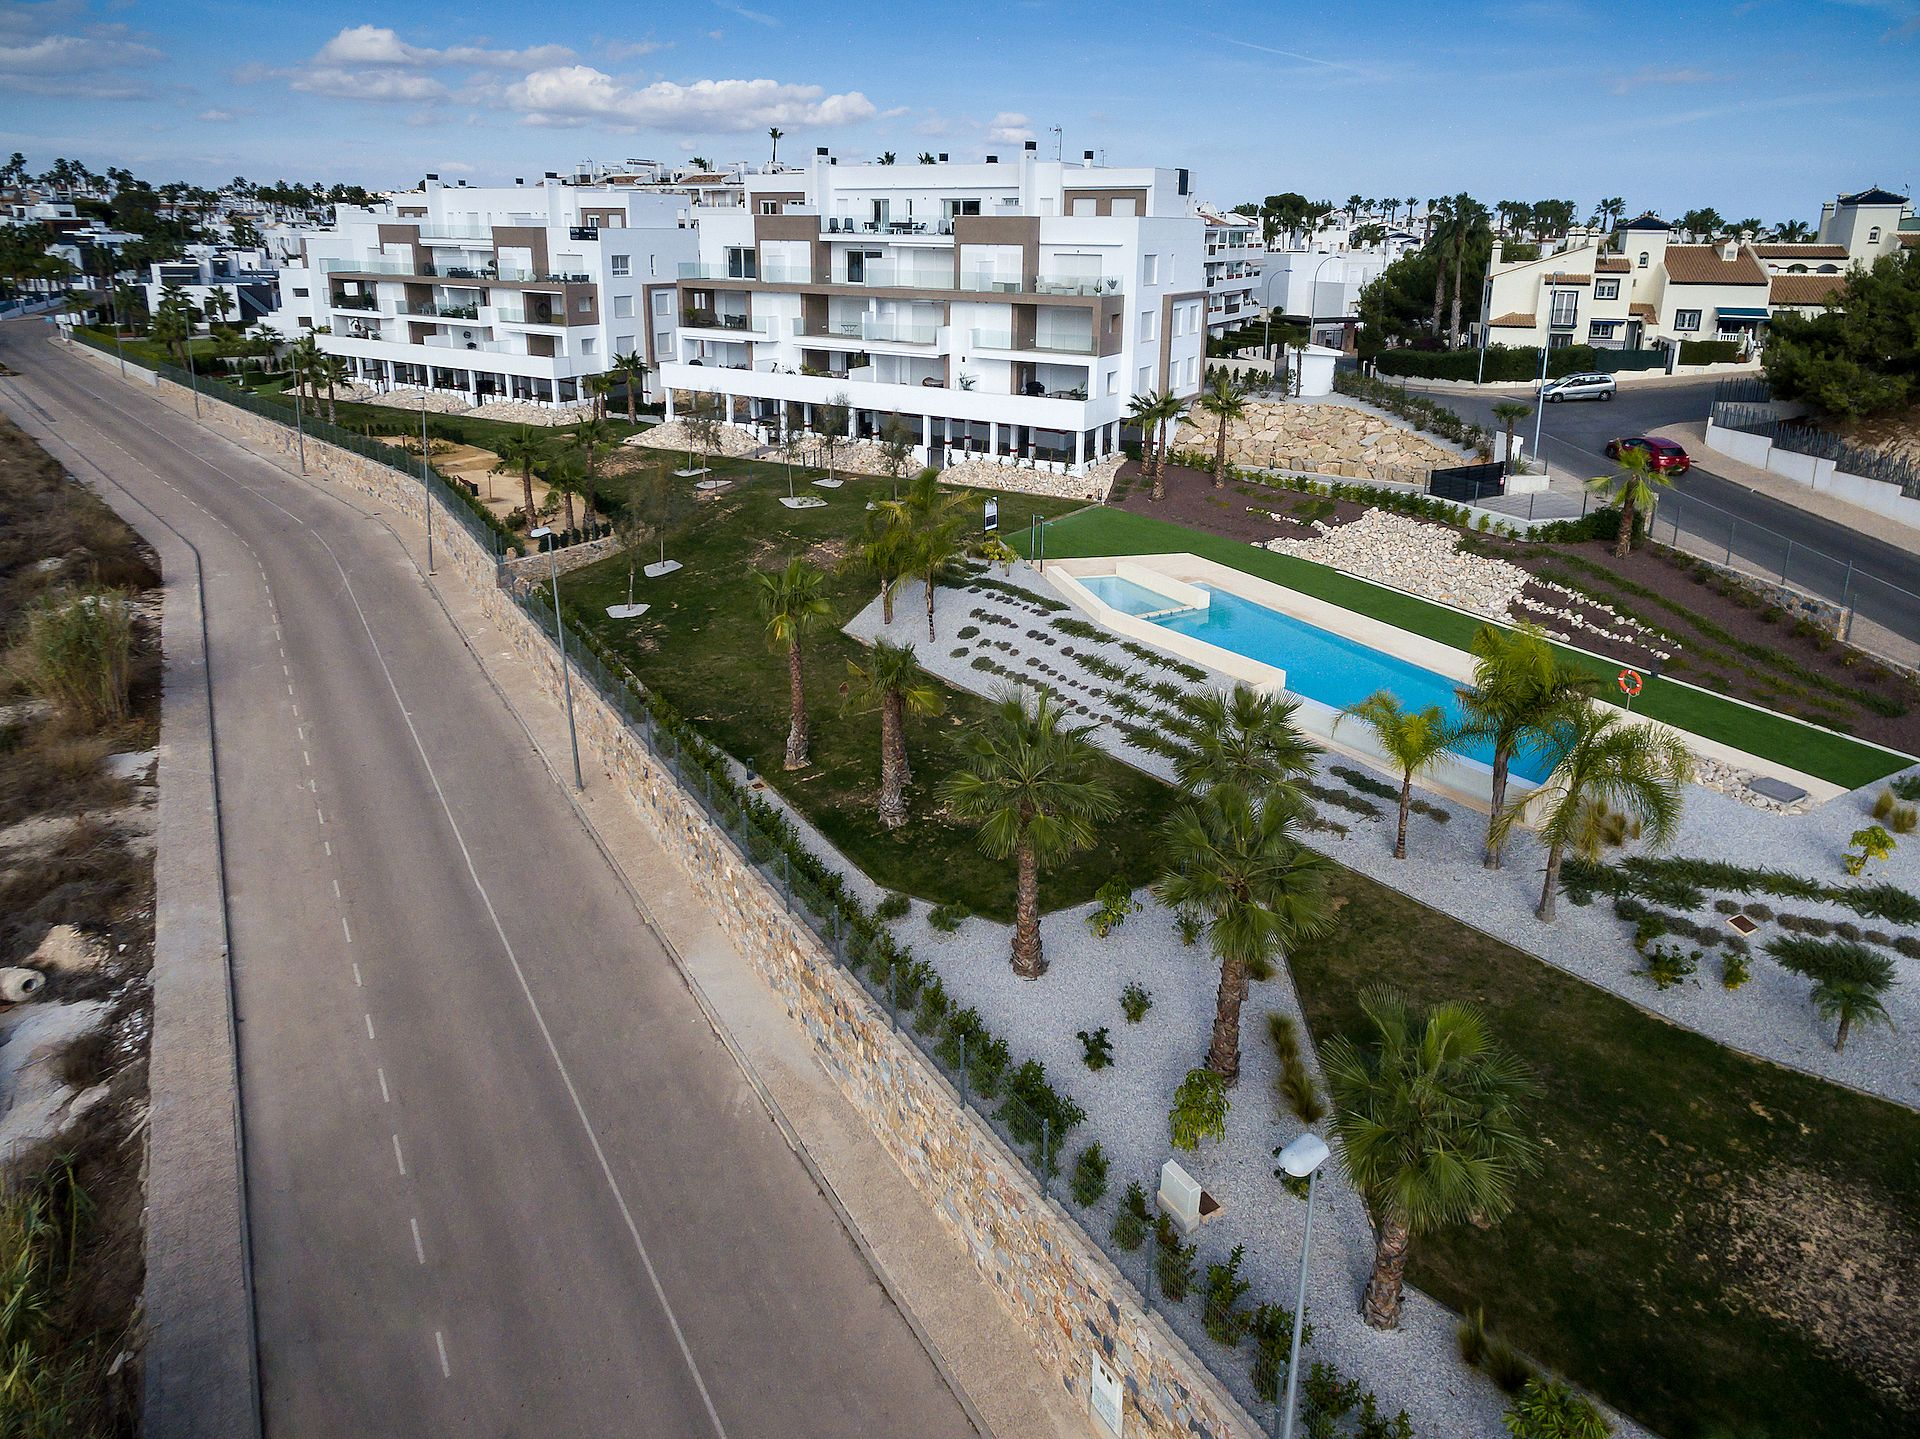 New built apartments in Villa Martin